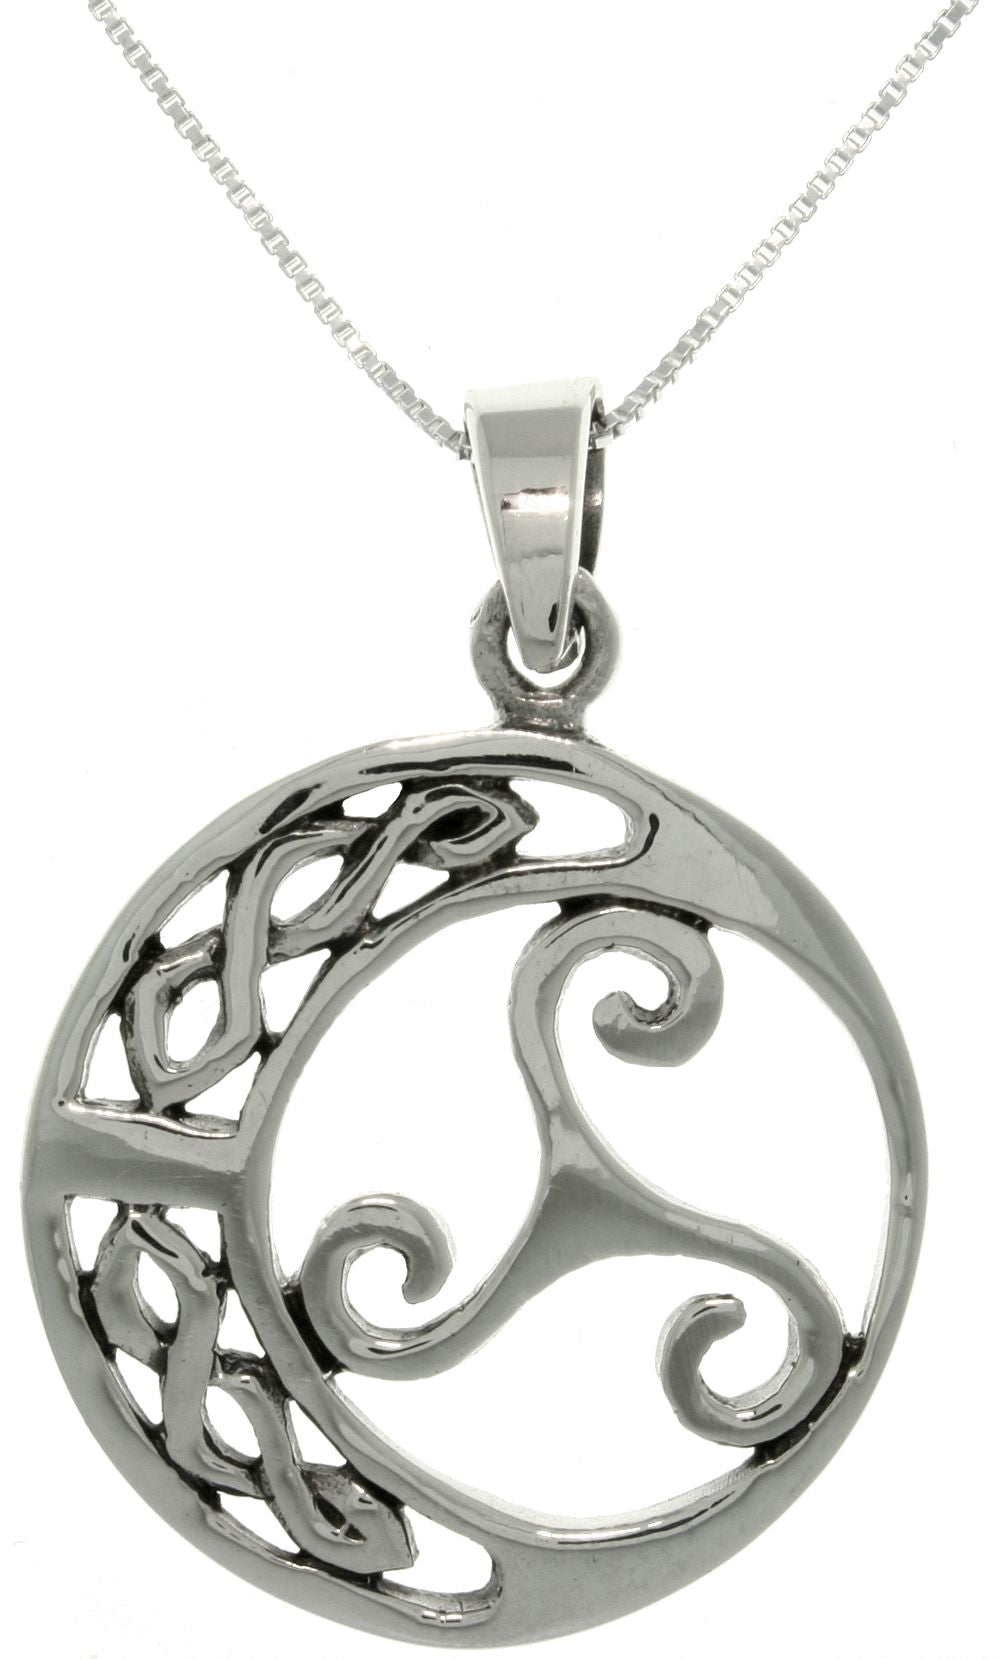 Jewelry Trends Sterling Silver Celtic Moon Trinity Knot Pendant with 18 Inch Box Chain Necklace